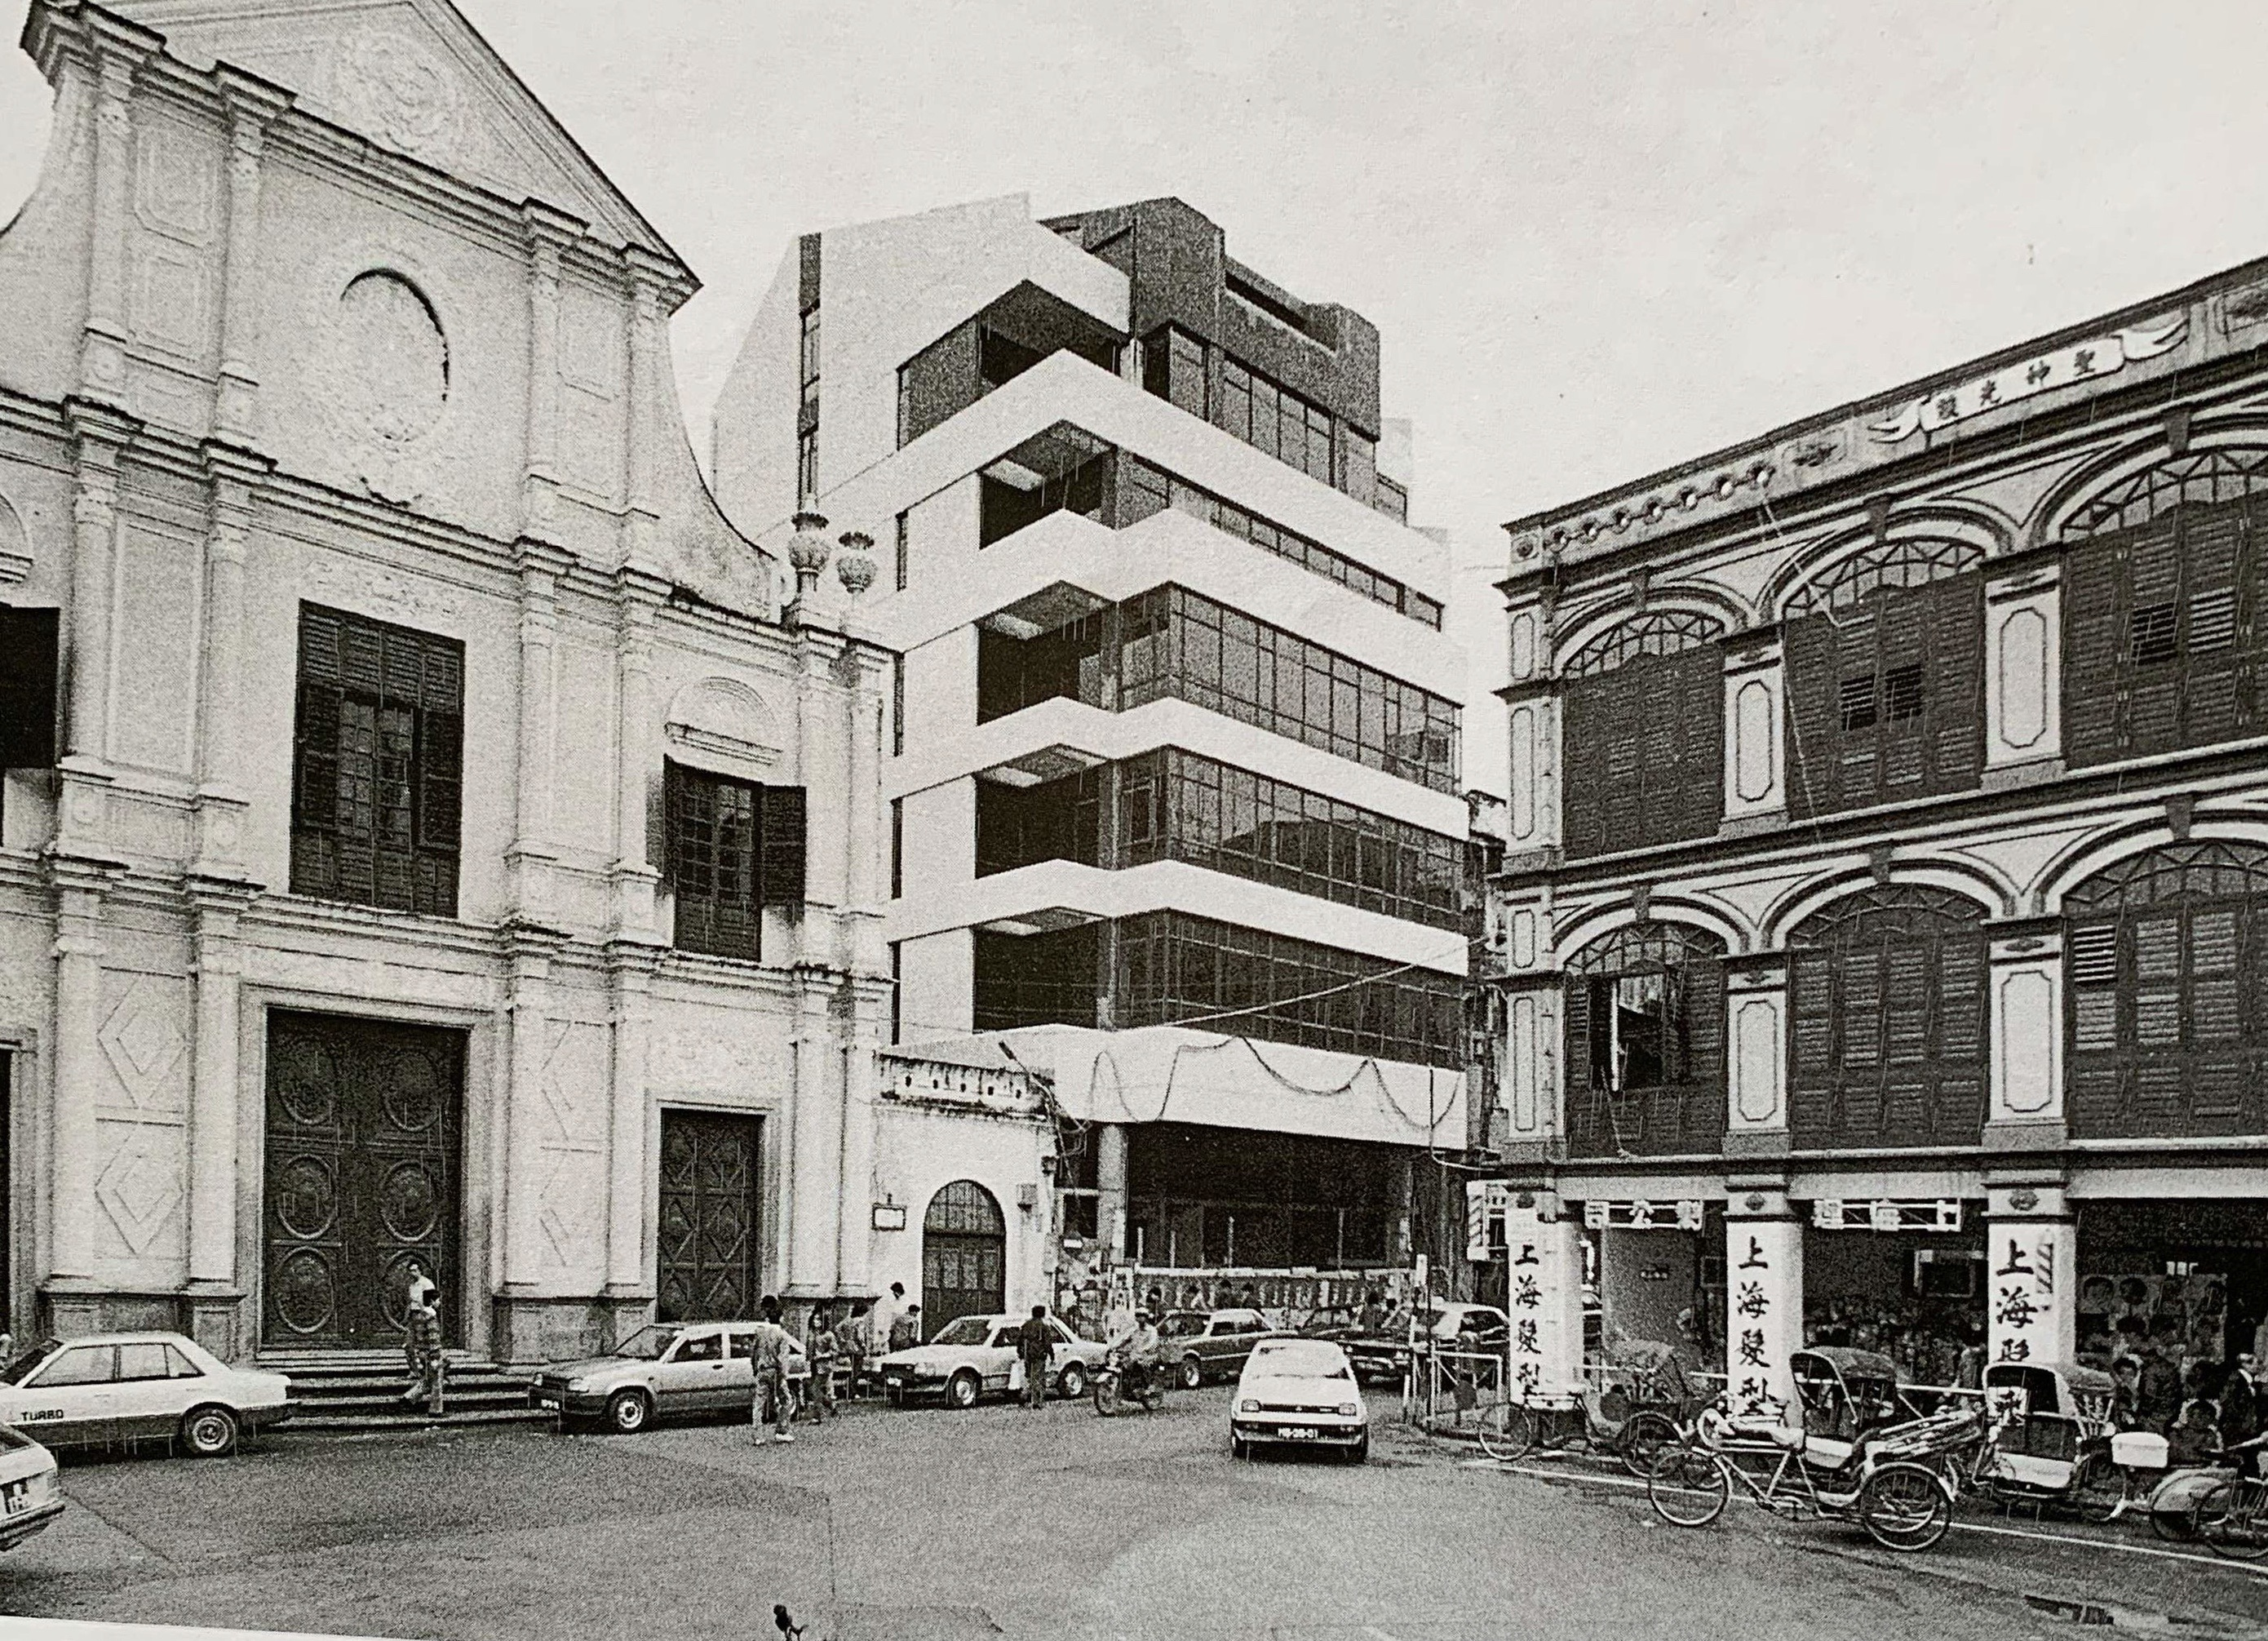 Old Macau photos S. Domingos Square in Leal Senado 80s